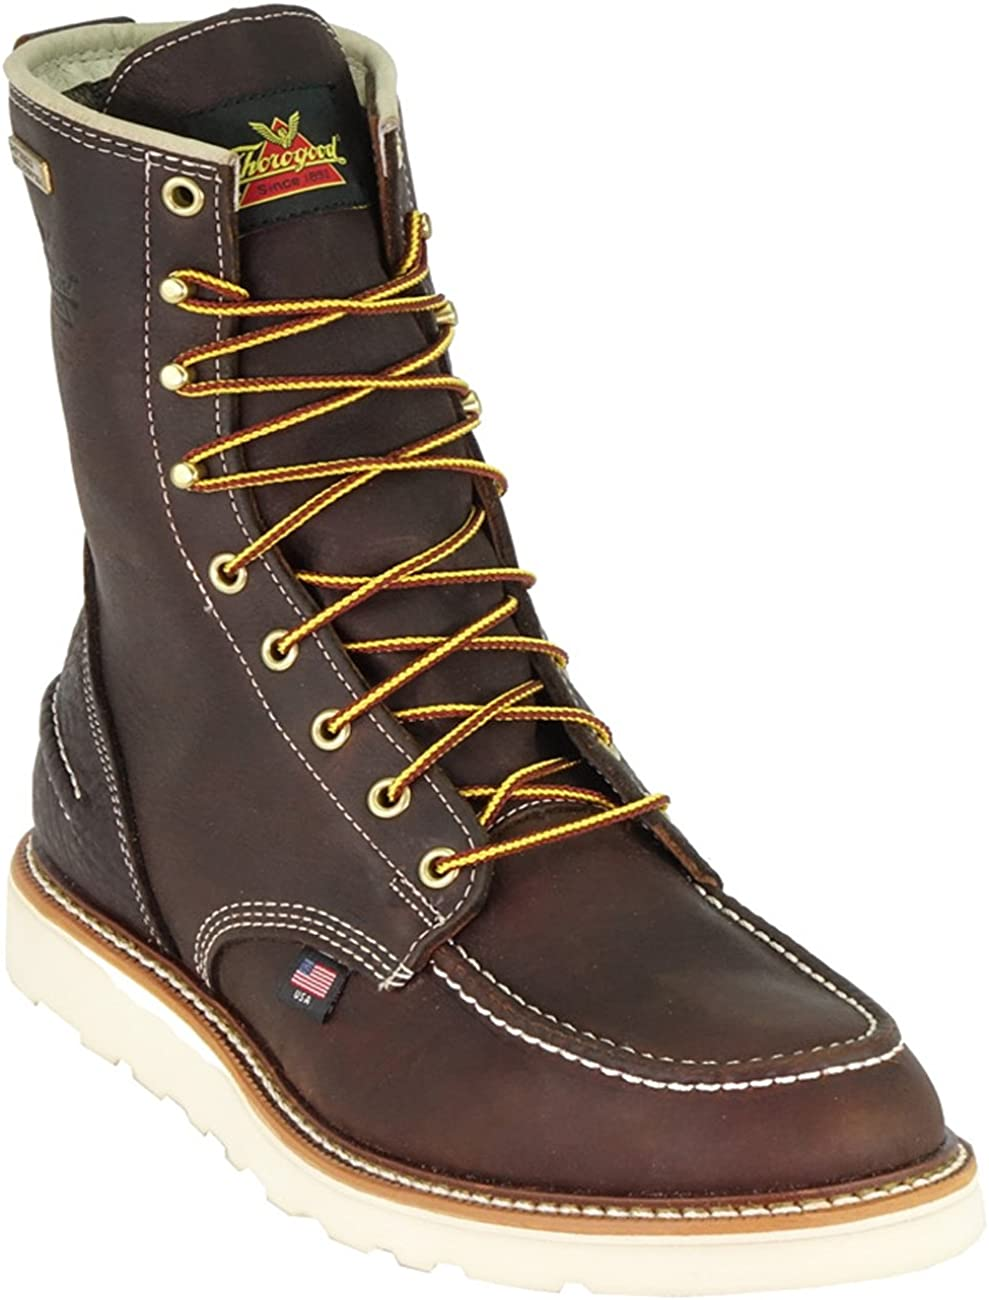 Thorogood Waterproof American Made Wedge Sole Ironworker Boots 814-4600